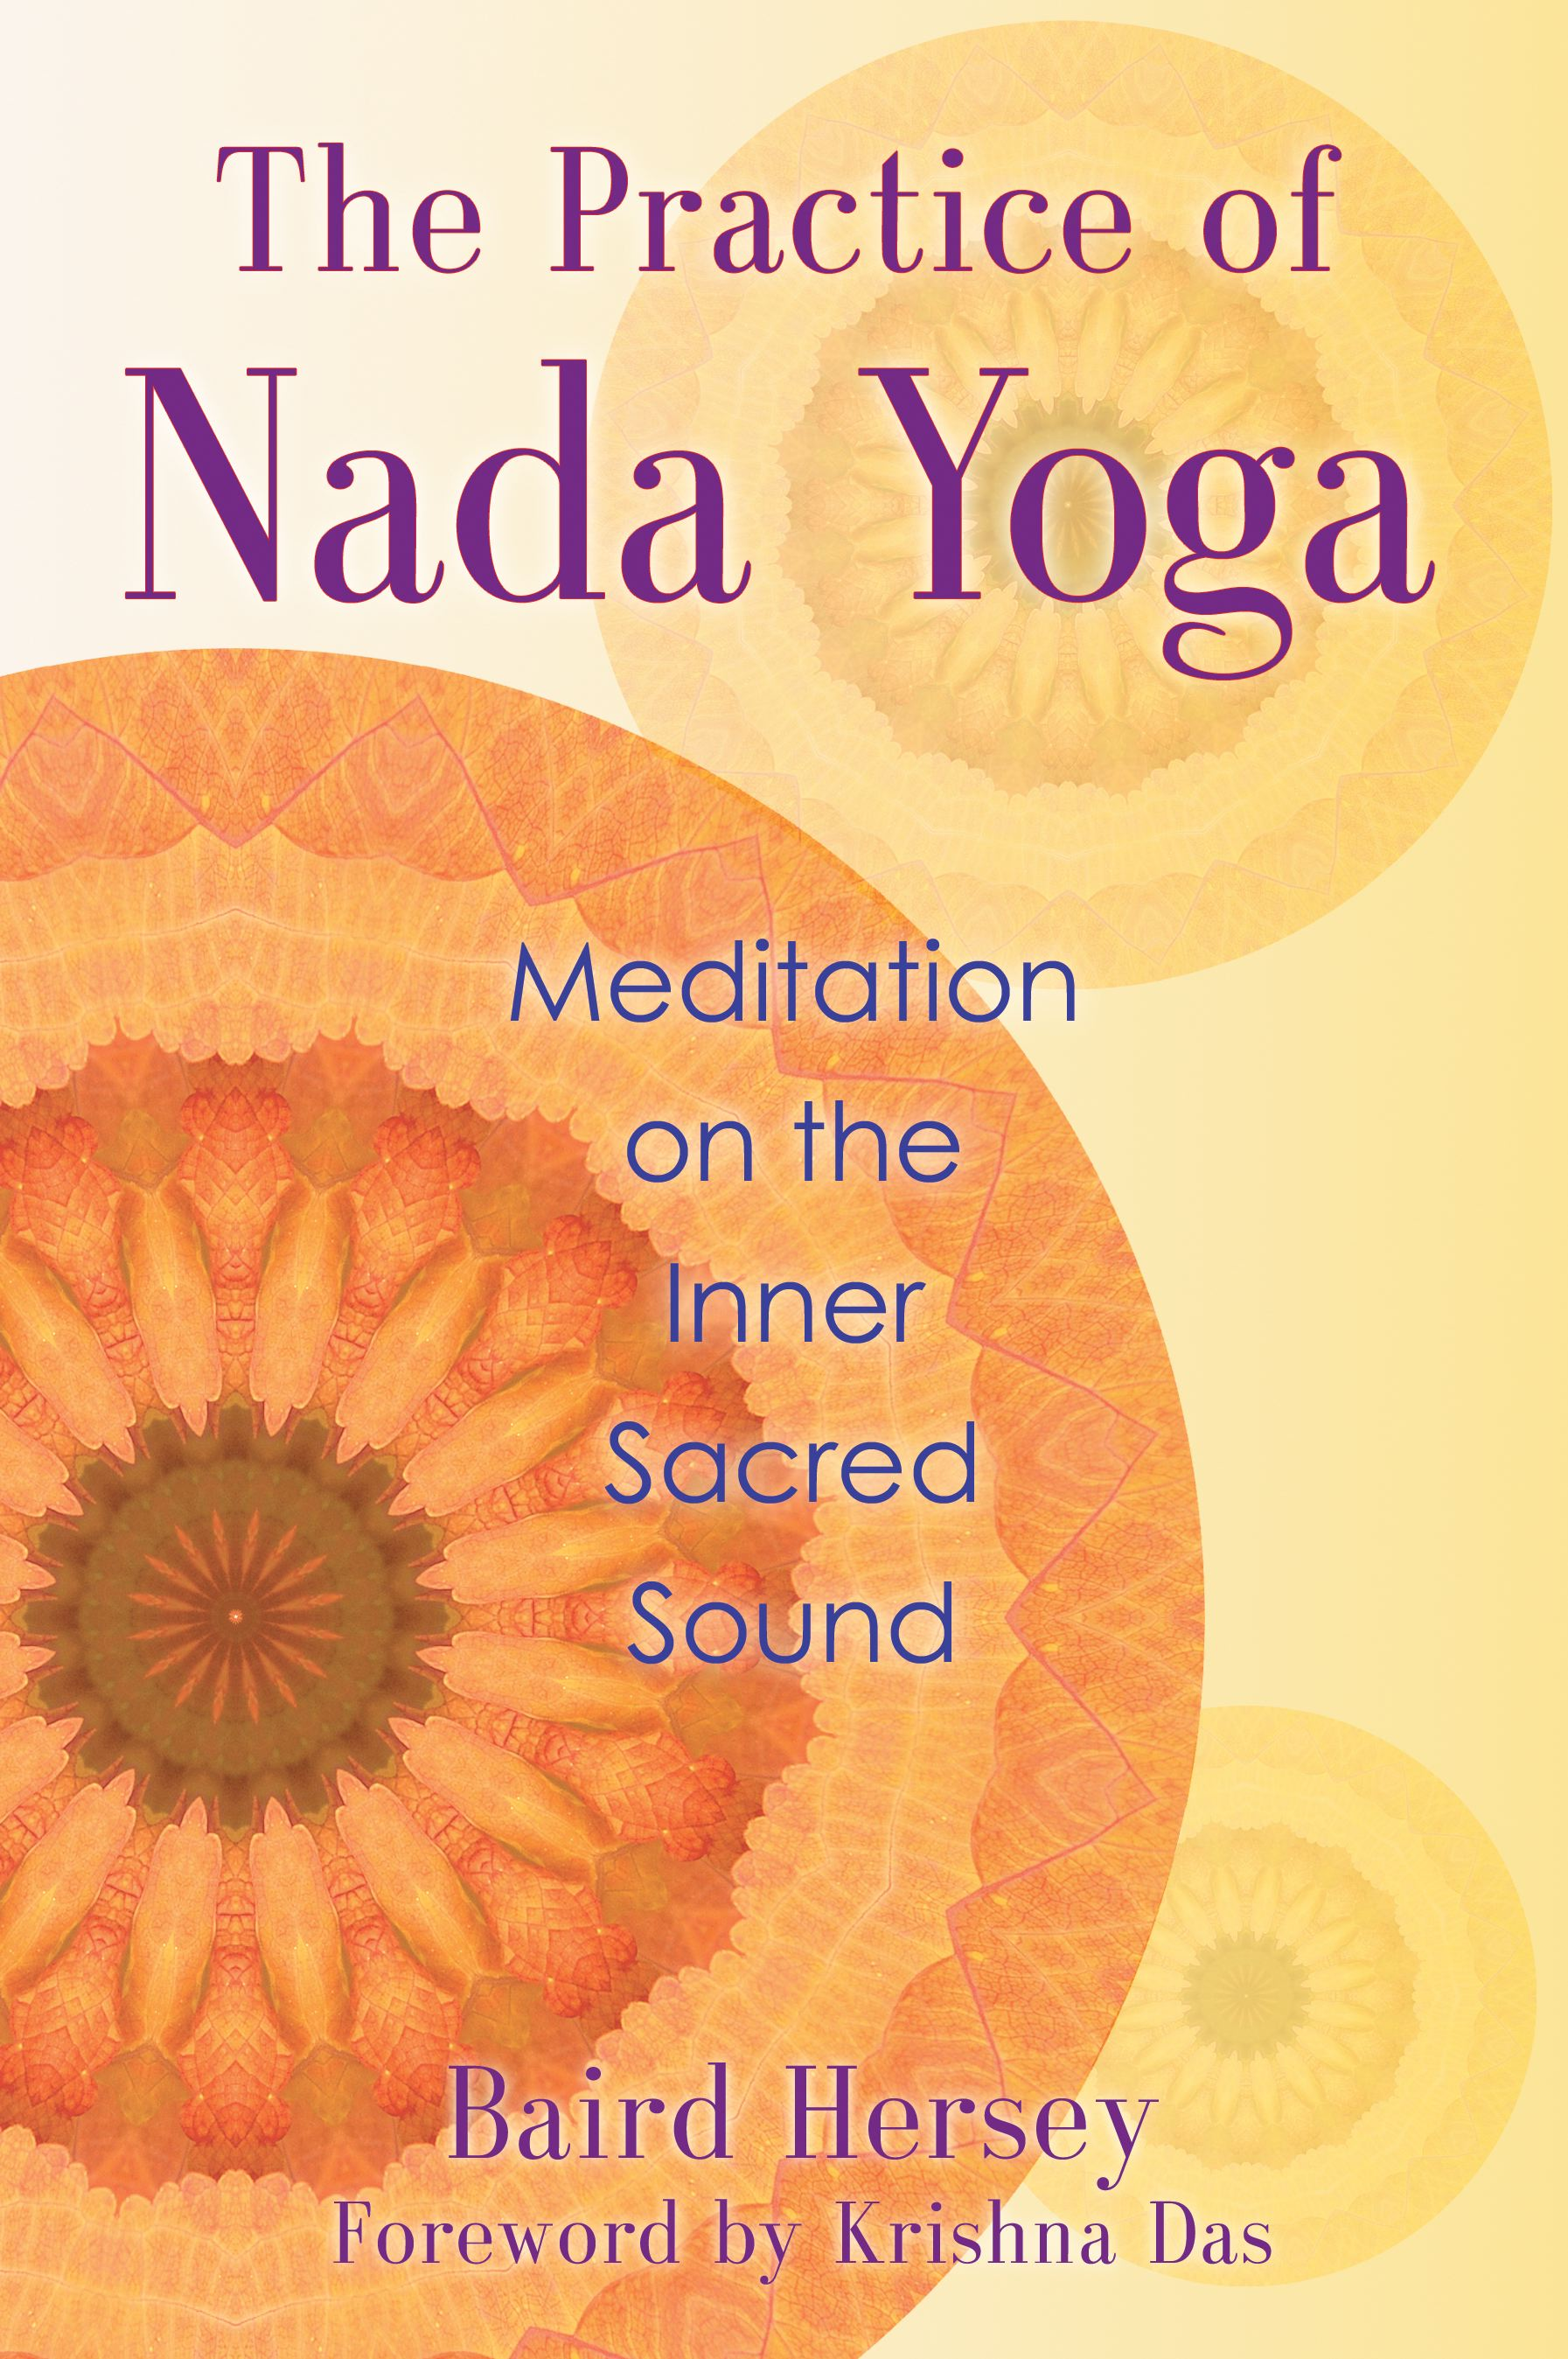 Book Cover Image (jpg): The Practice of Nada Yoga